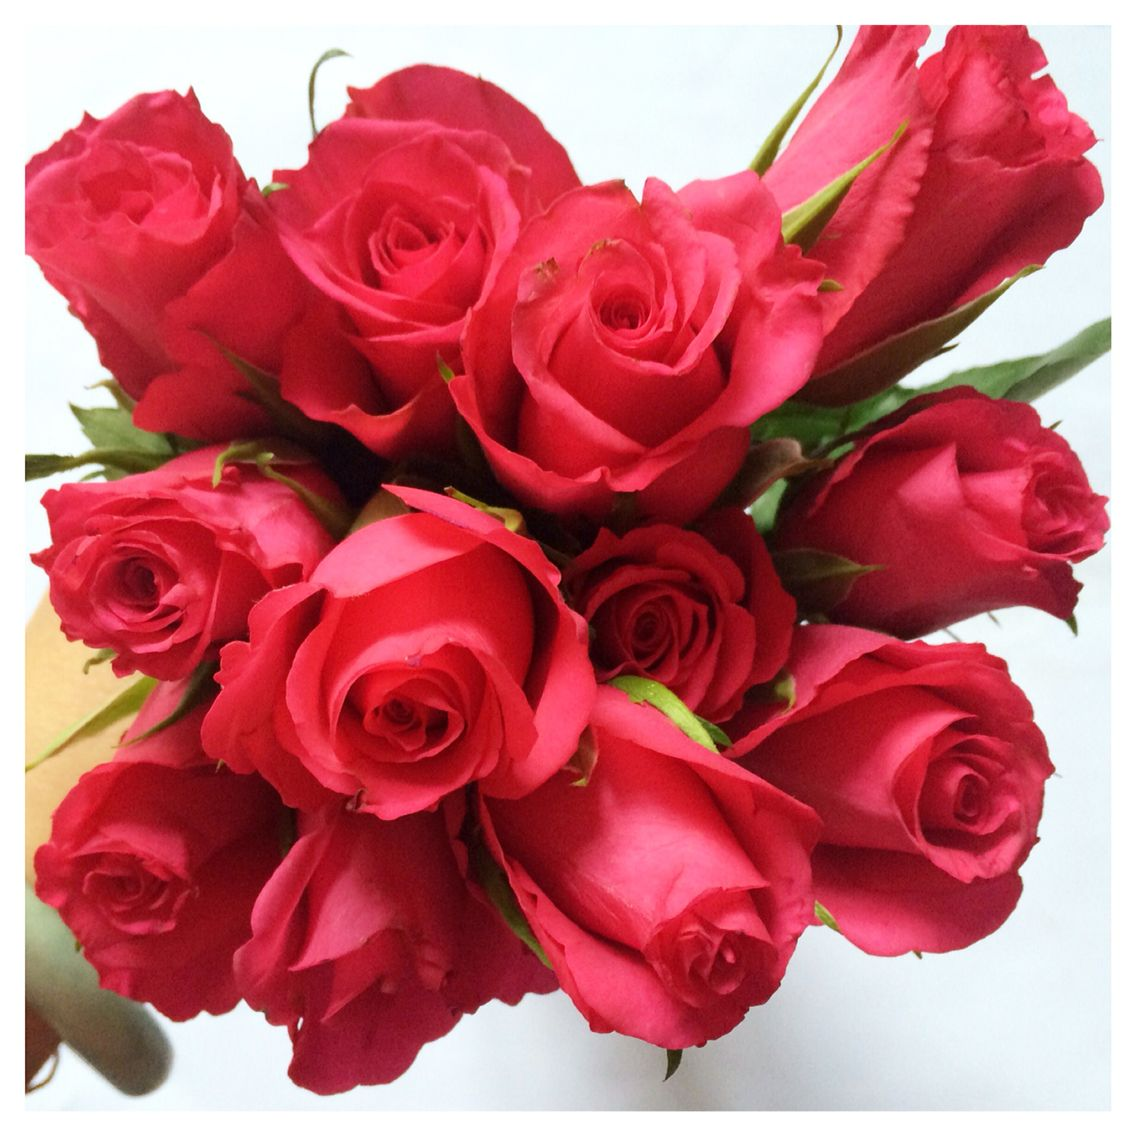 Today cheer me up purchased of beautiful red roses. #rose #red #flower #shopping #beautiful #weekend #home #plant #happy #joys #love #flowers #pretty #mood #emotion #smile